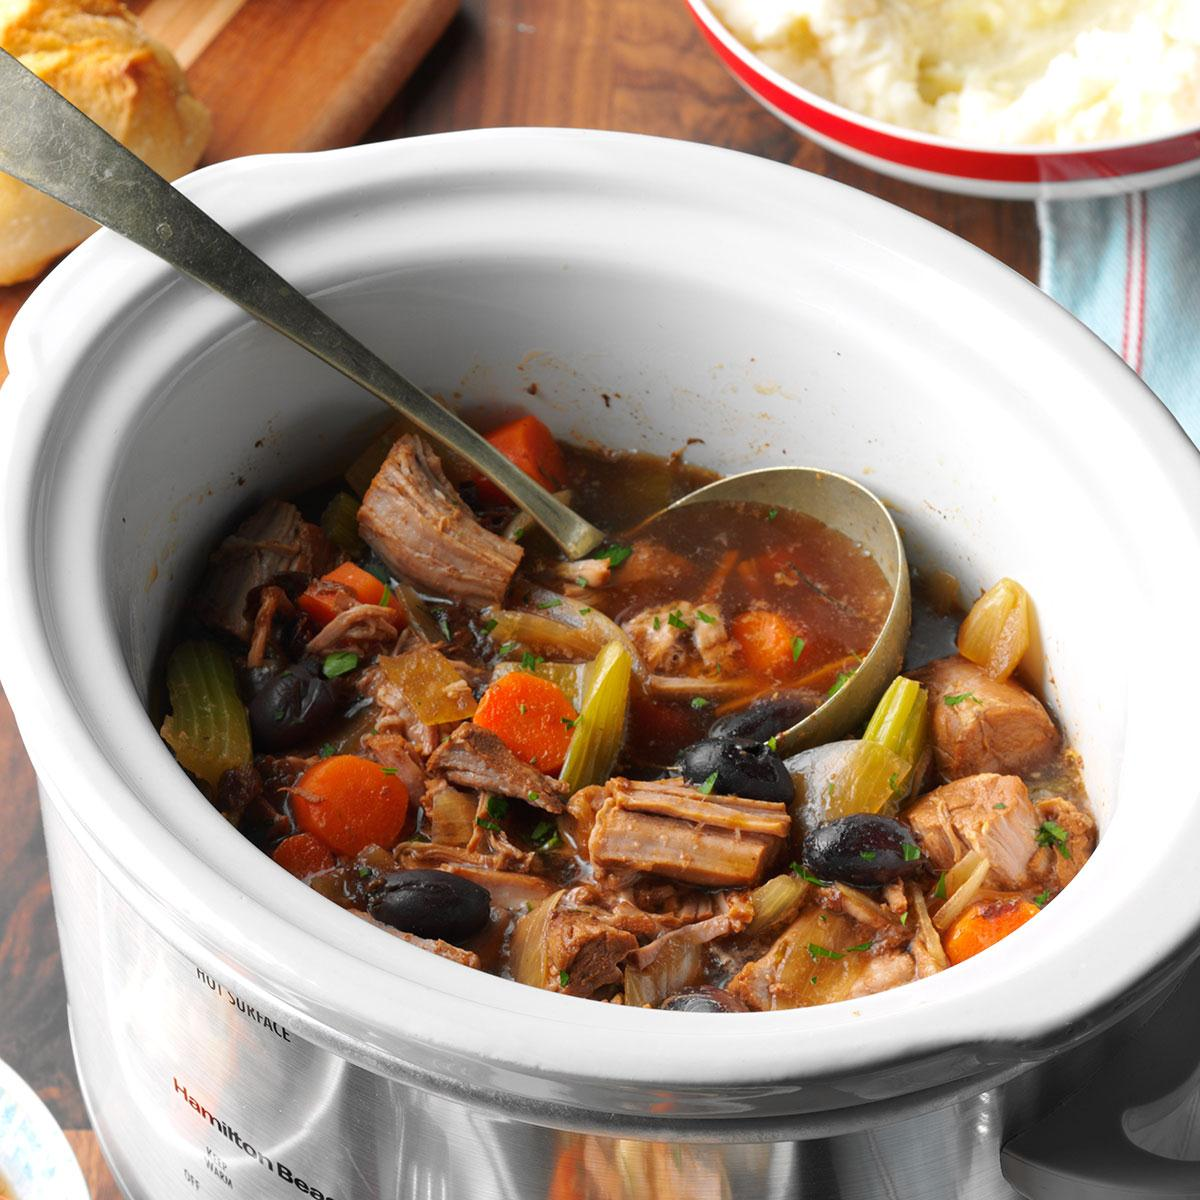 Recipes for cooking excellent stew potatoes in a slow cooker